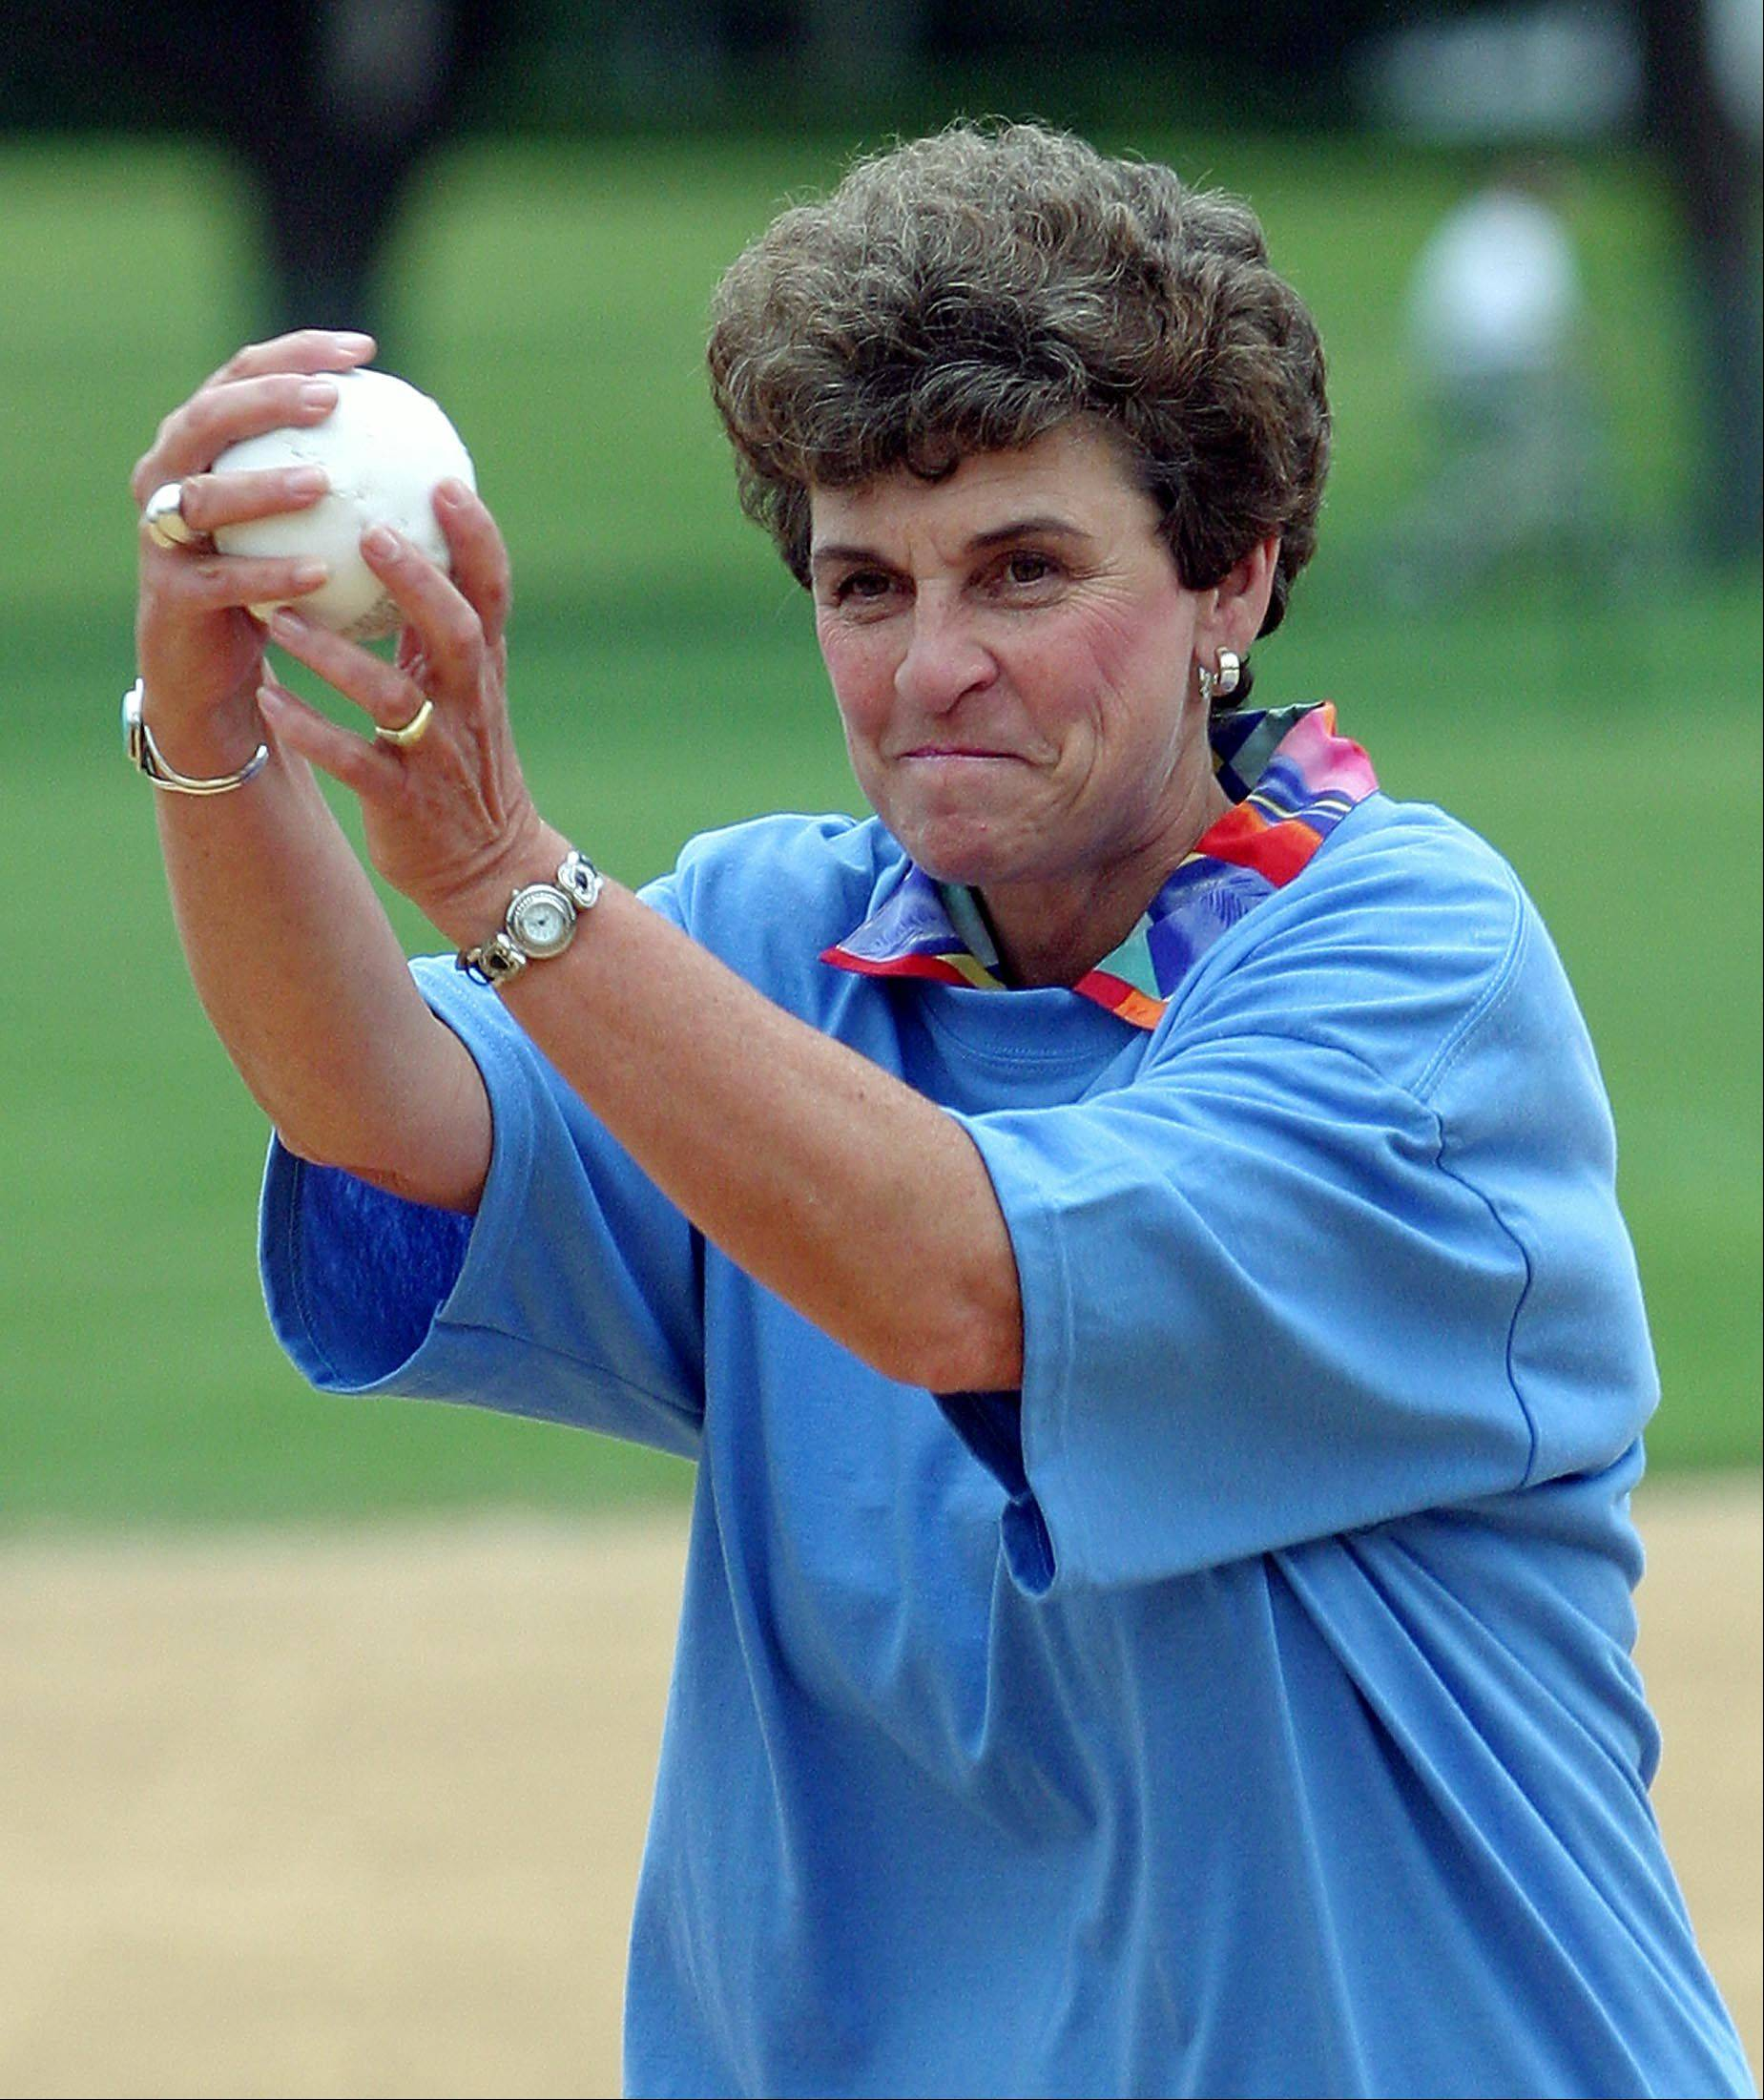 Arlene Mulder warms up for the ceremonial first pitch at the annual Million Week softball game between Arlington International Racecourse employees and Arlington Heights police officers in Pioneer Park, on Aug. 11, 2003.